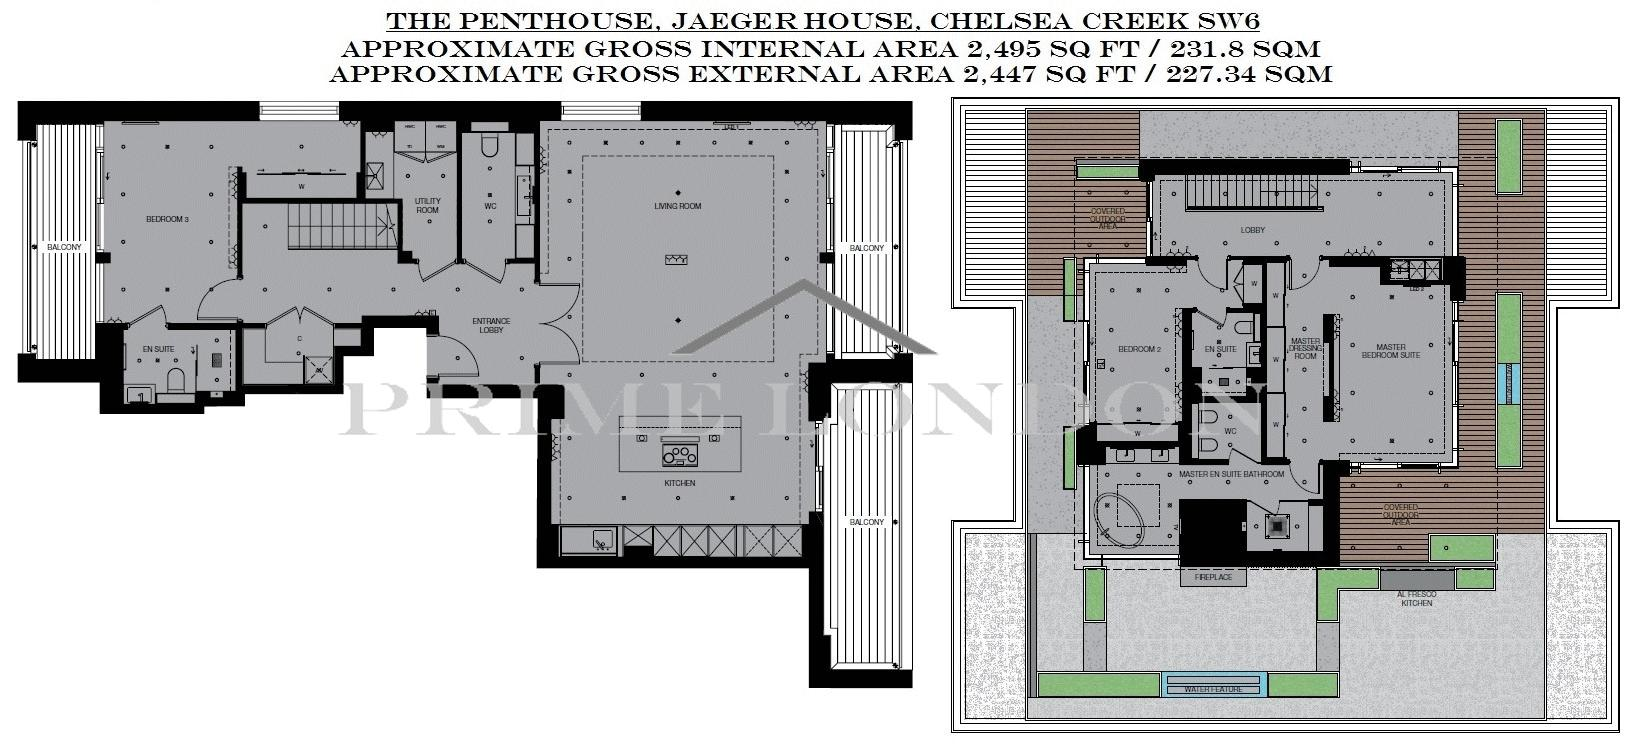 The Penthouse Jaeger House